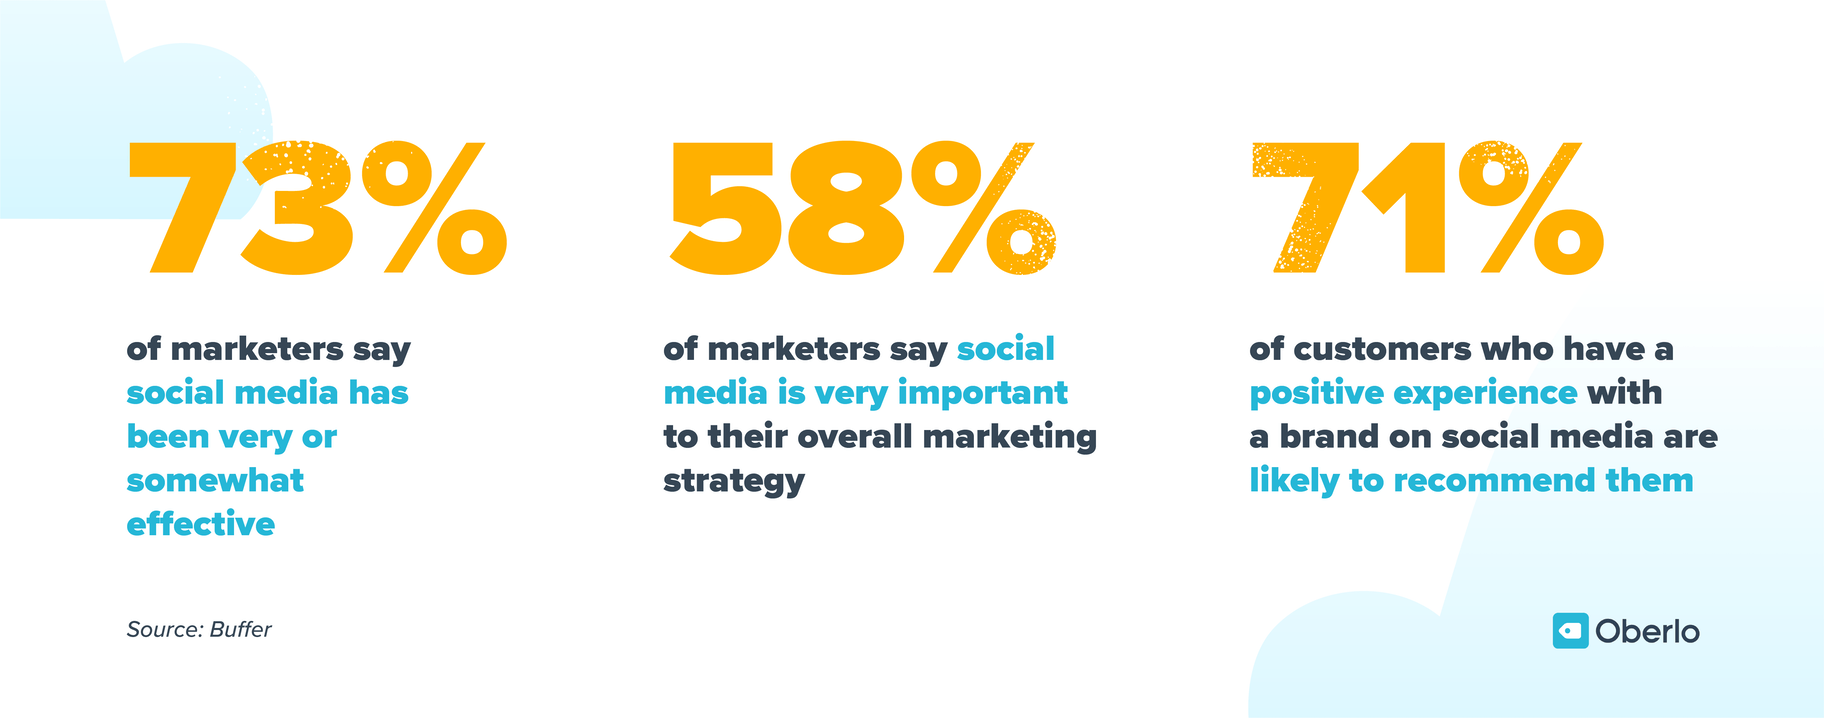 73% of marketers say social media marketing has been very or somewhat effective, 58% say social media is very important to their overall strategy, 71% of customers who have a positive experience with a brand on social media are likely to recommend them